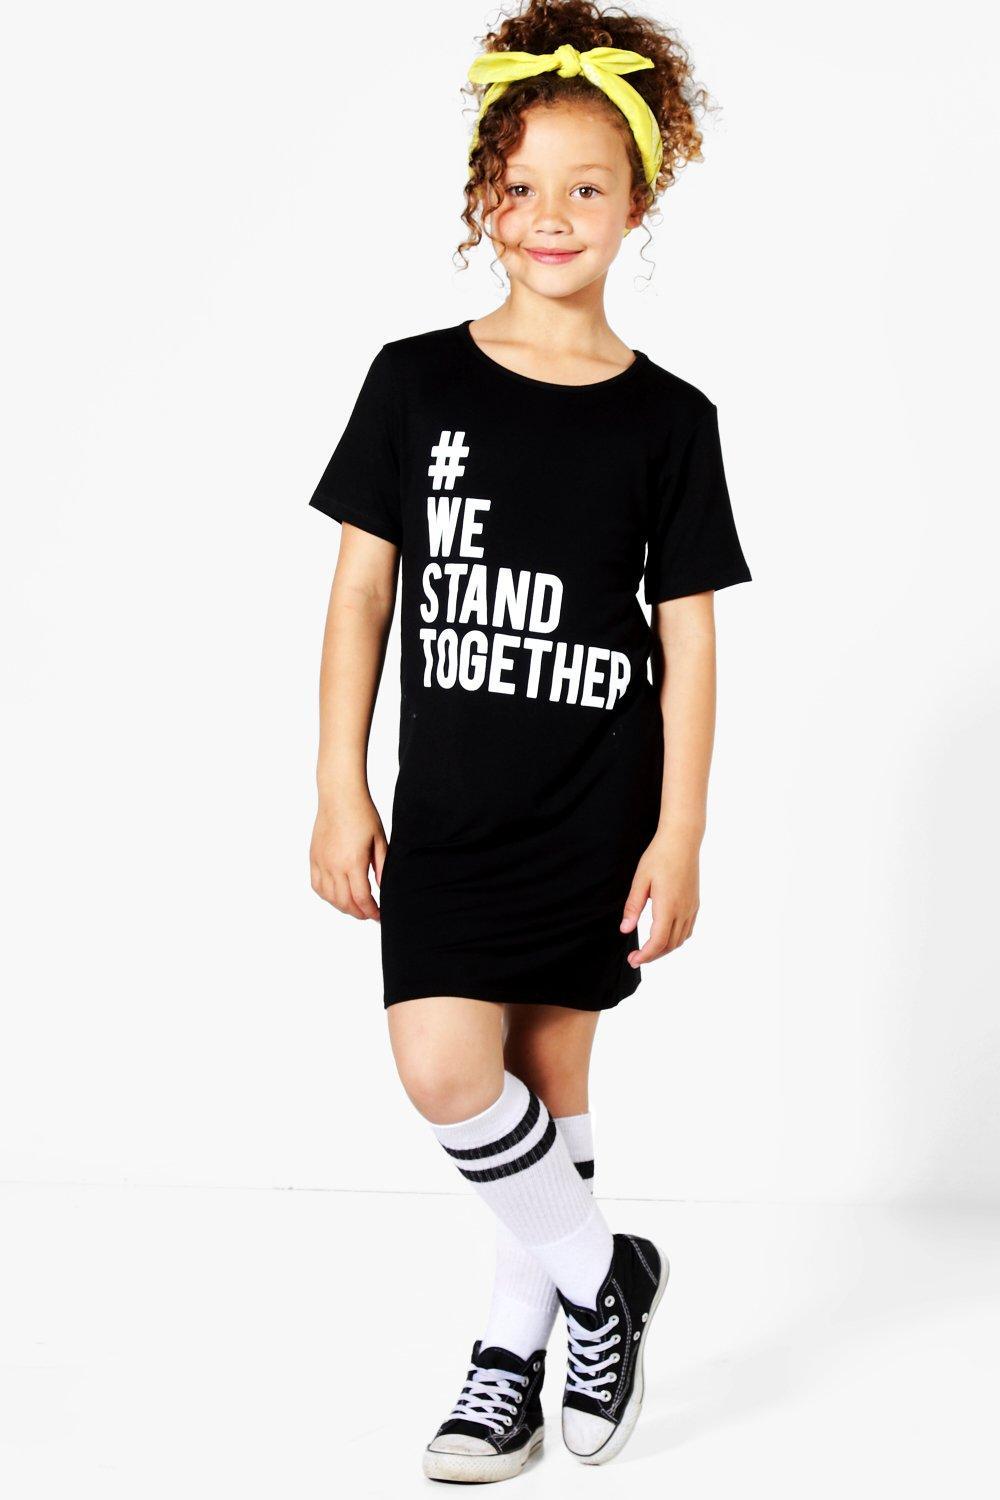 906c3adcb4 Charity Girls We Stand Together T-Shirt Dress